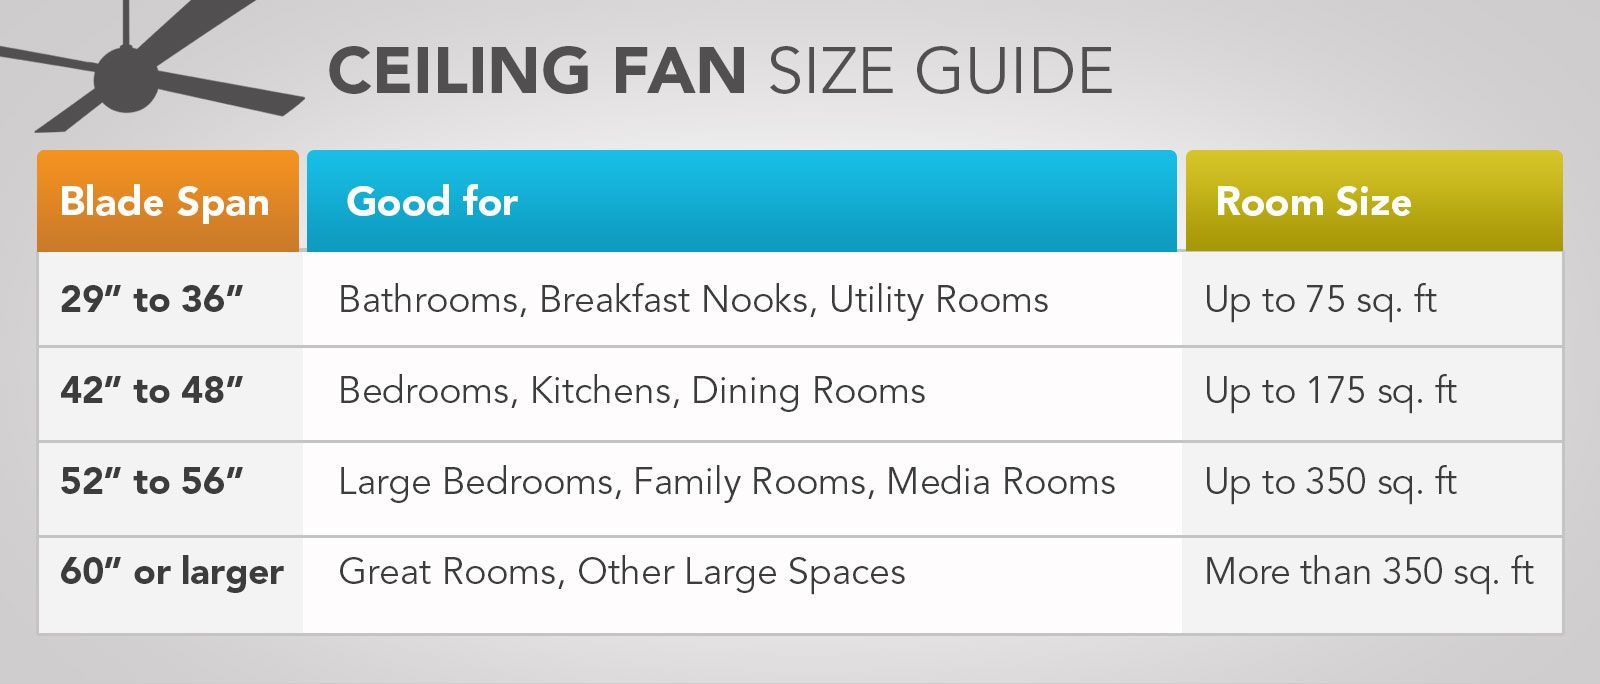 Ceiling Fan Size Guide Ceiling Fan Size Ceiling Fan Ceiling